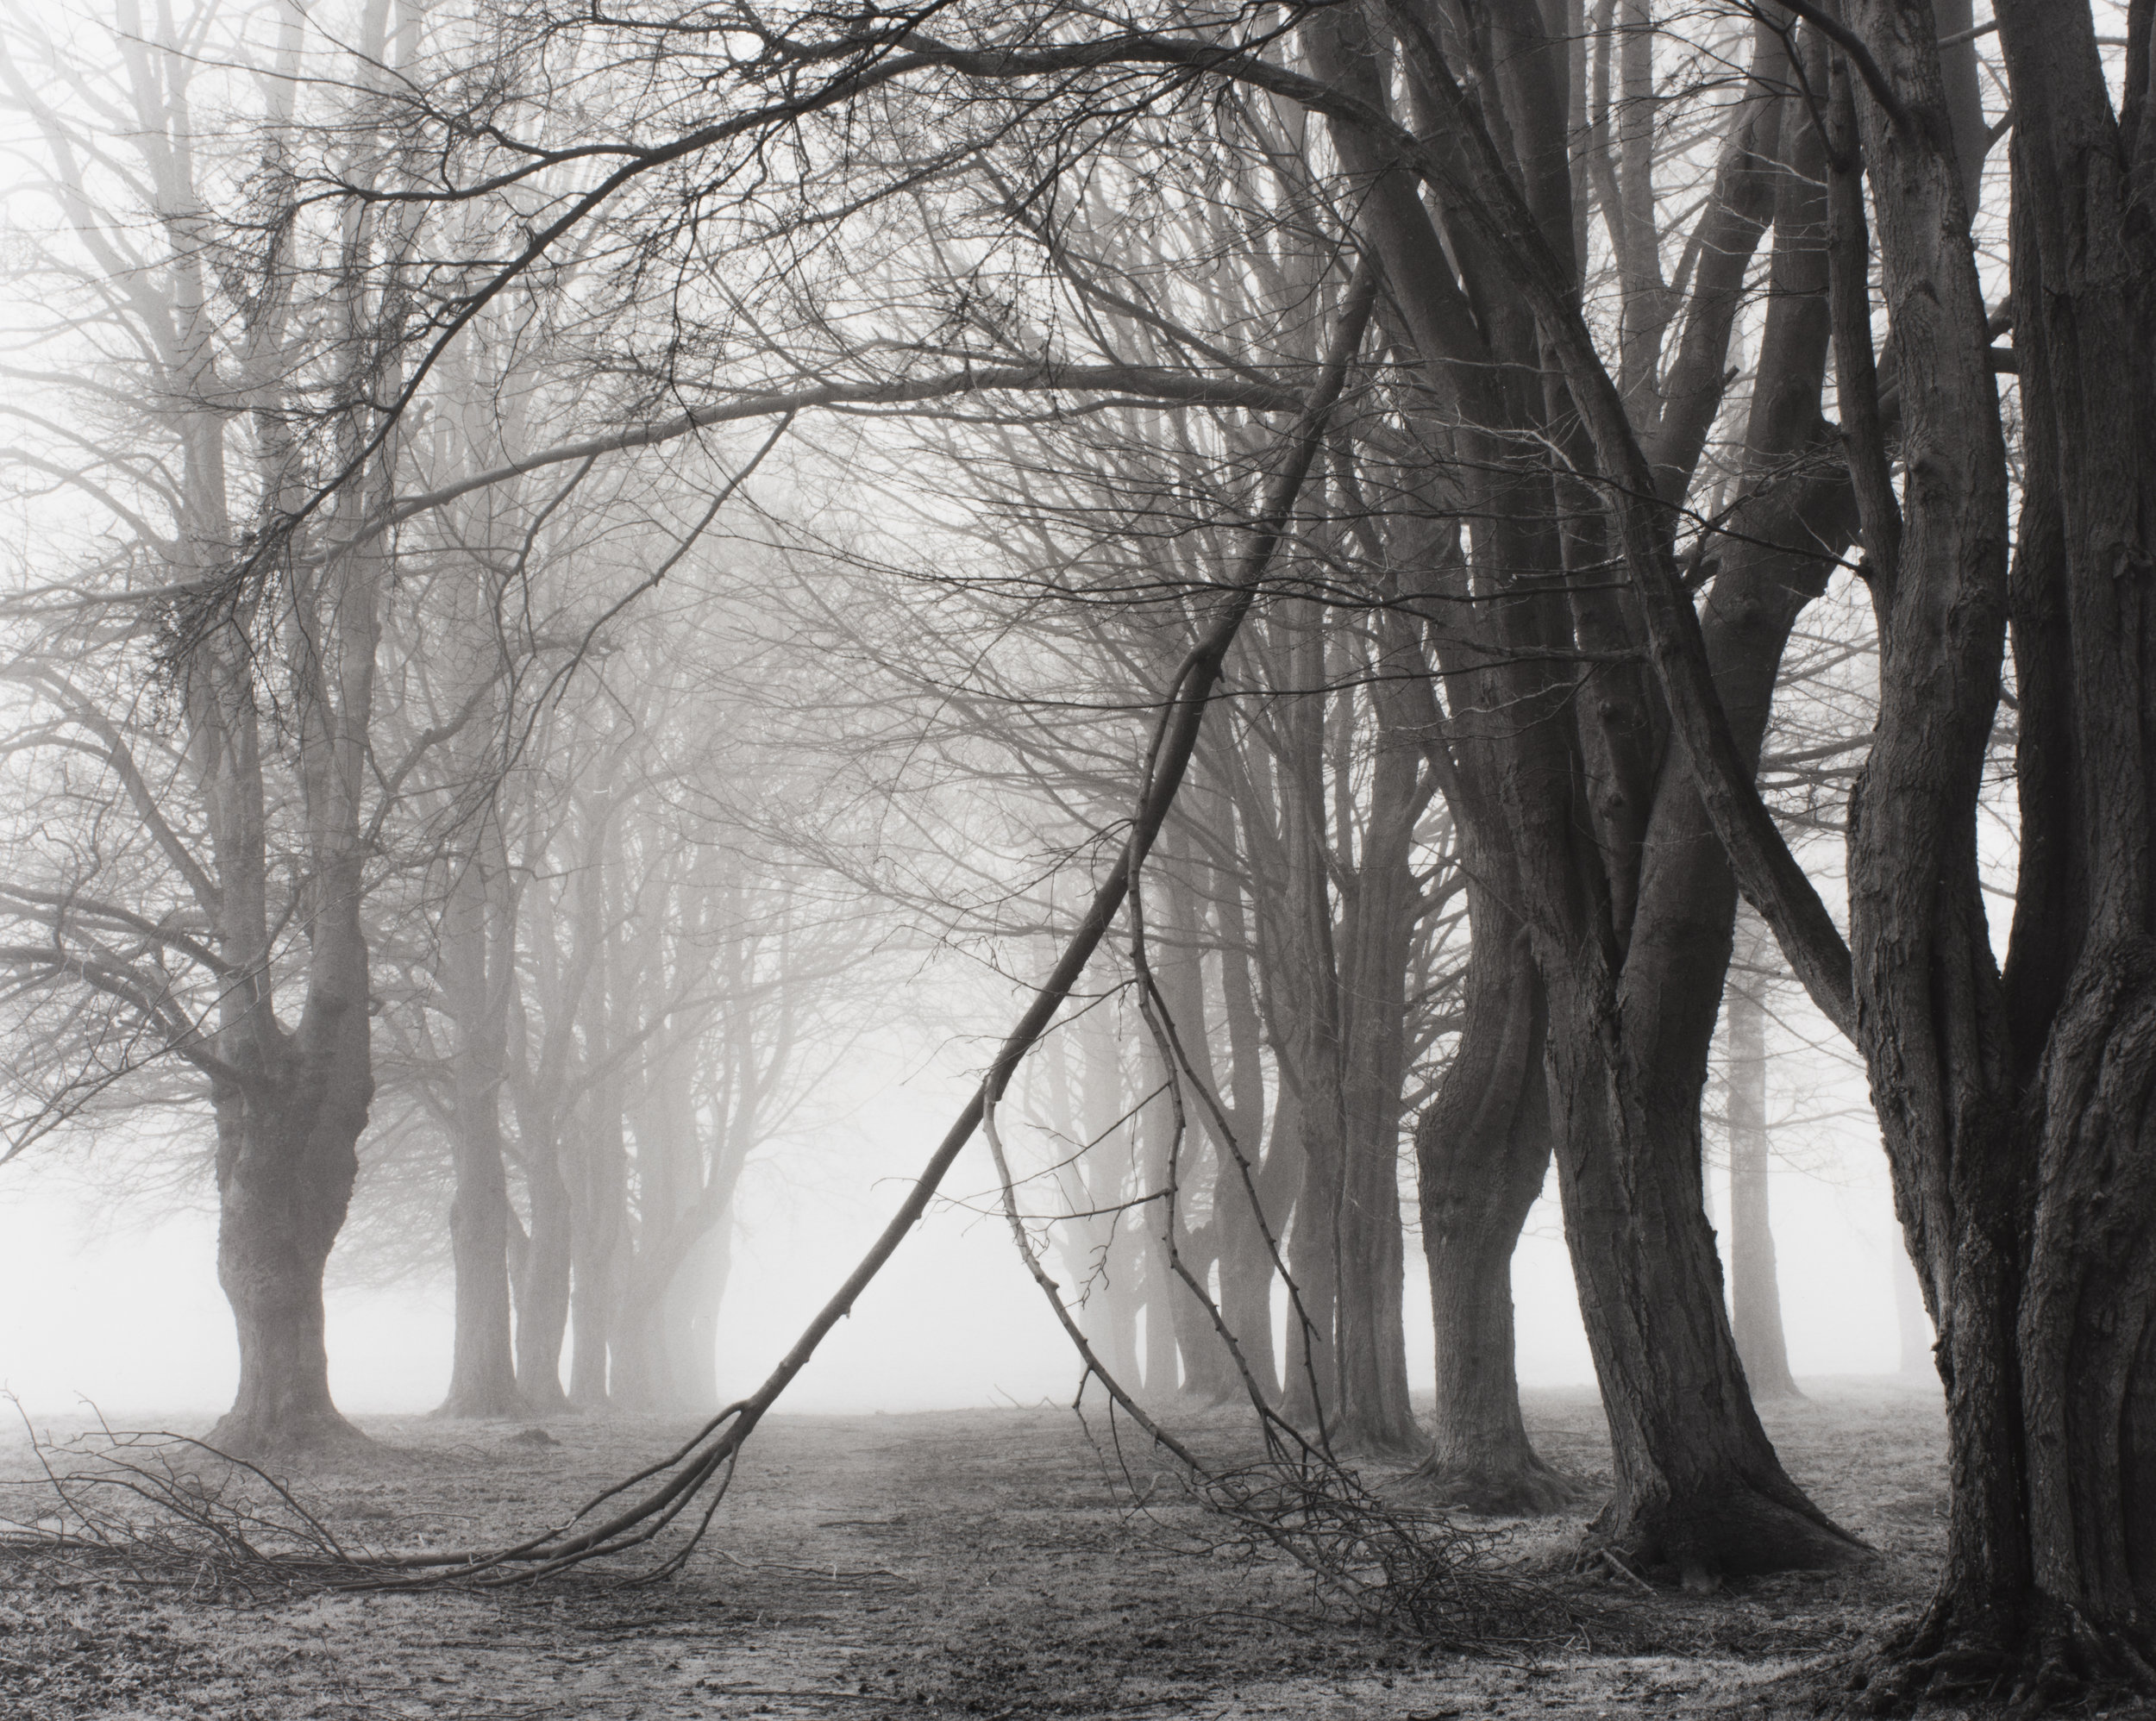 Avenue of Trees, Newfoundland Memorial Park, Somme, photographer, Peter Cattrell, 2000